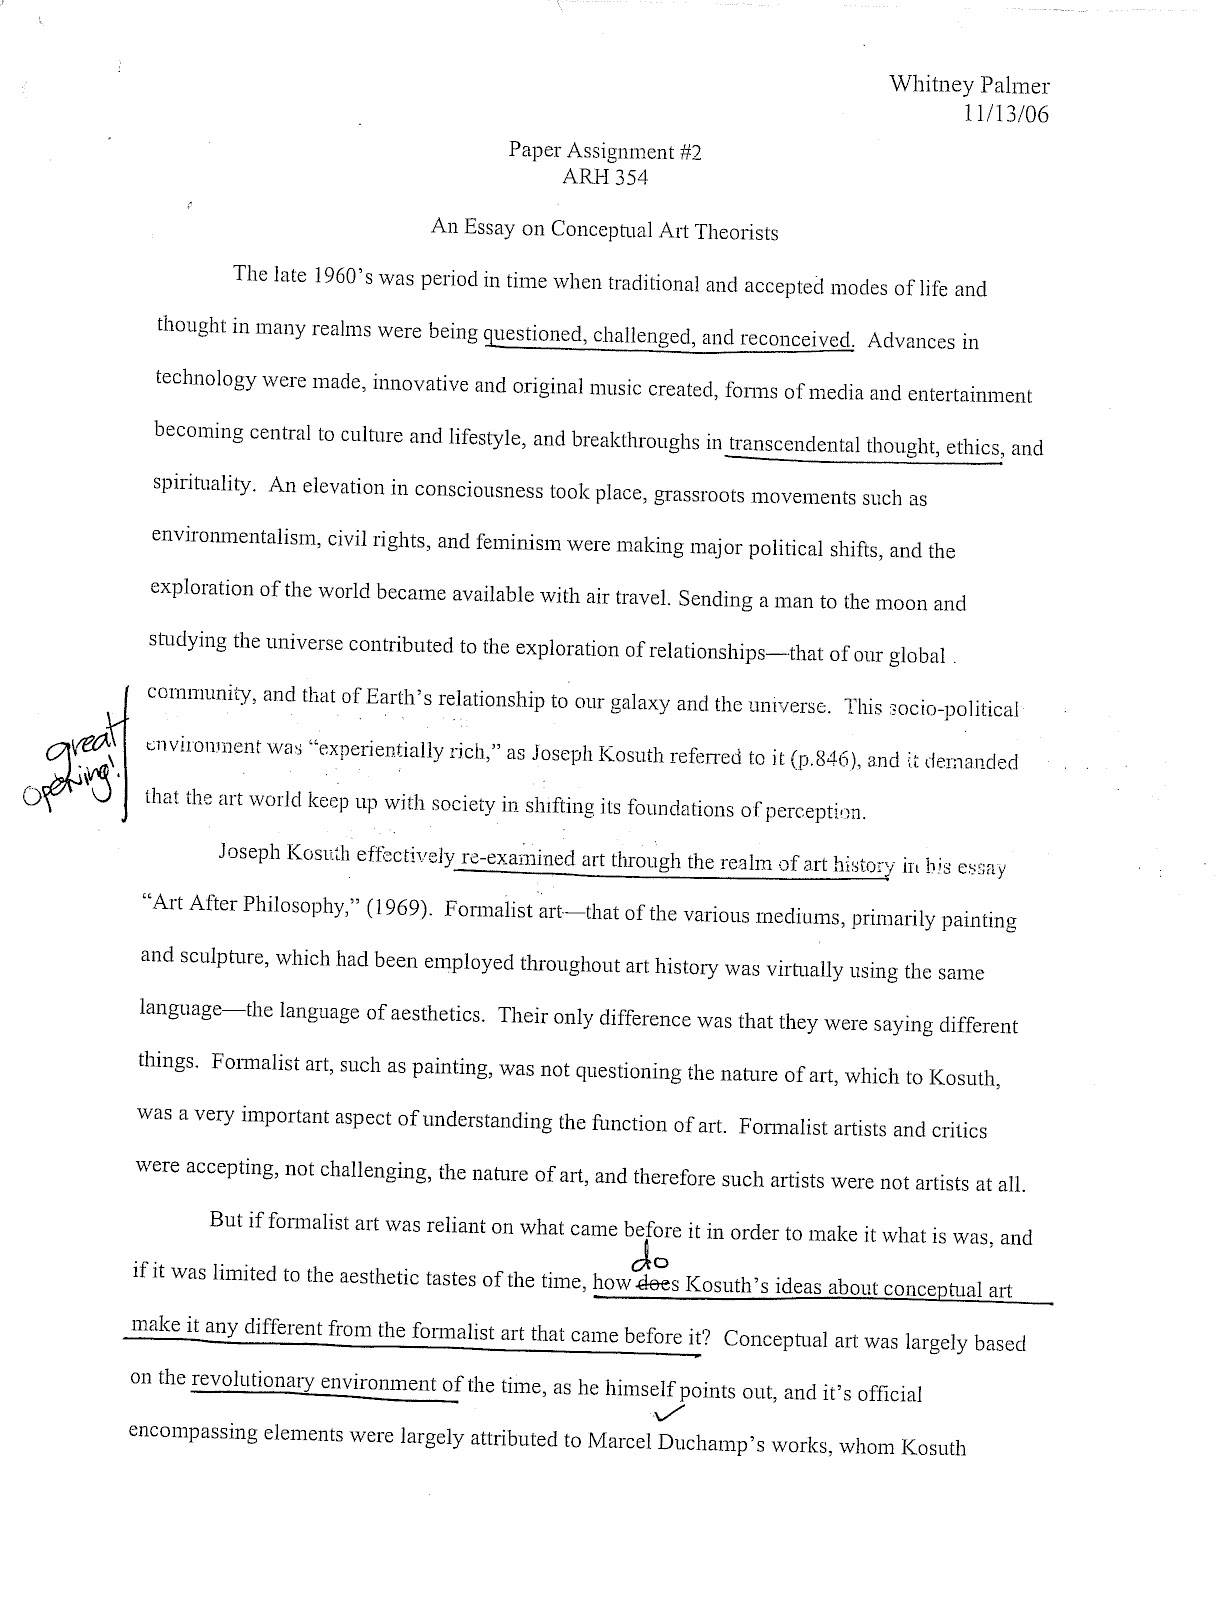 essay modes expository essay academic essay basic rules writing  art history essays art history essays compucenter the aim of this essay from art history fall